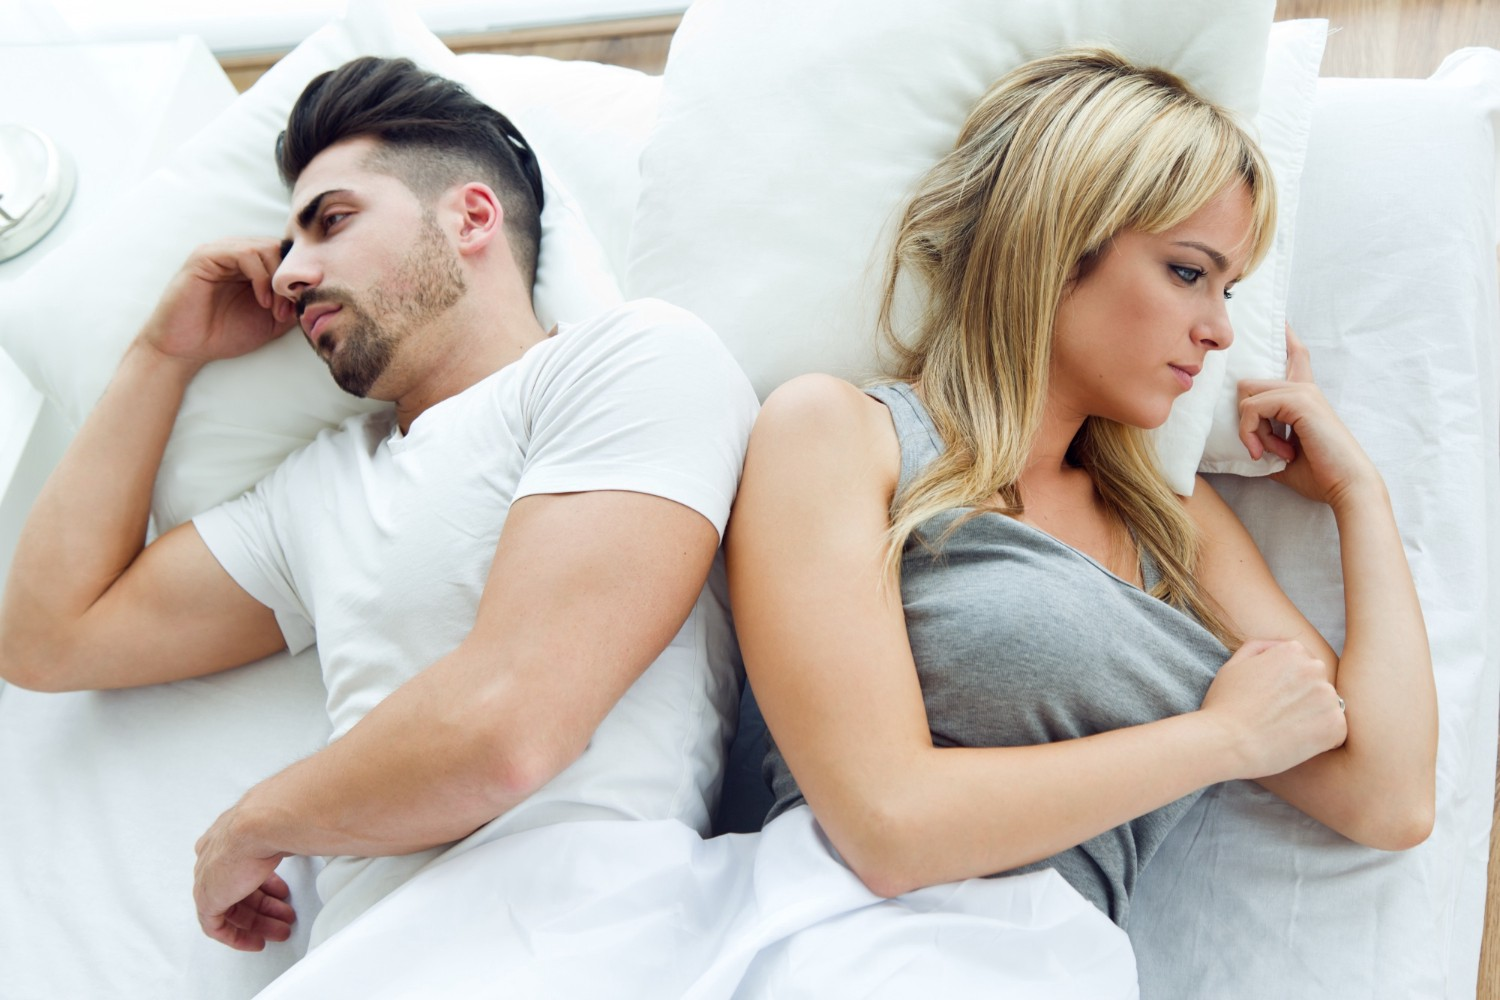 A couple facing 3 relationship problems that they thought were insignificant to solve initially.